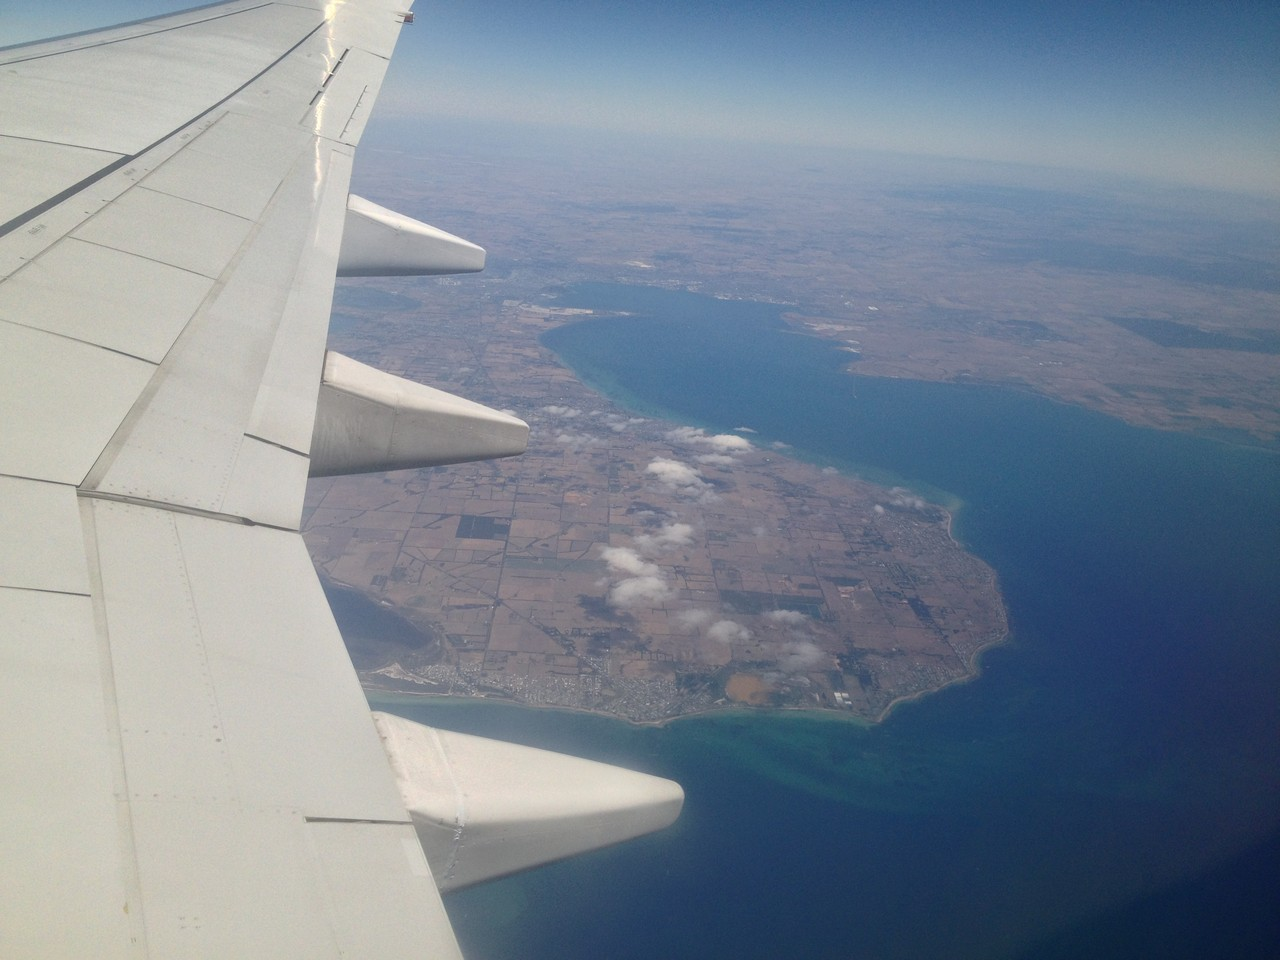 Lovely view of the island from the plane